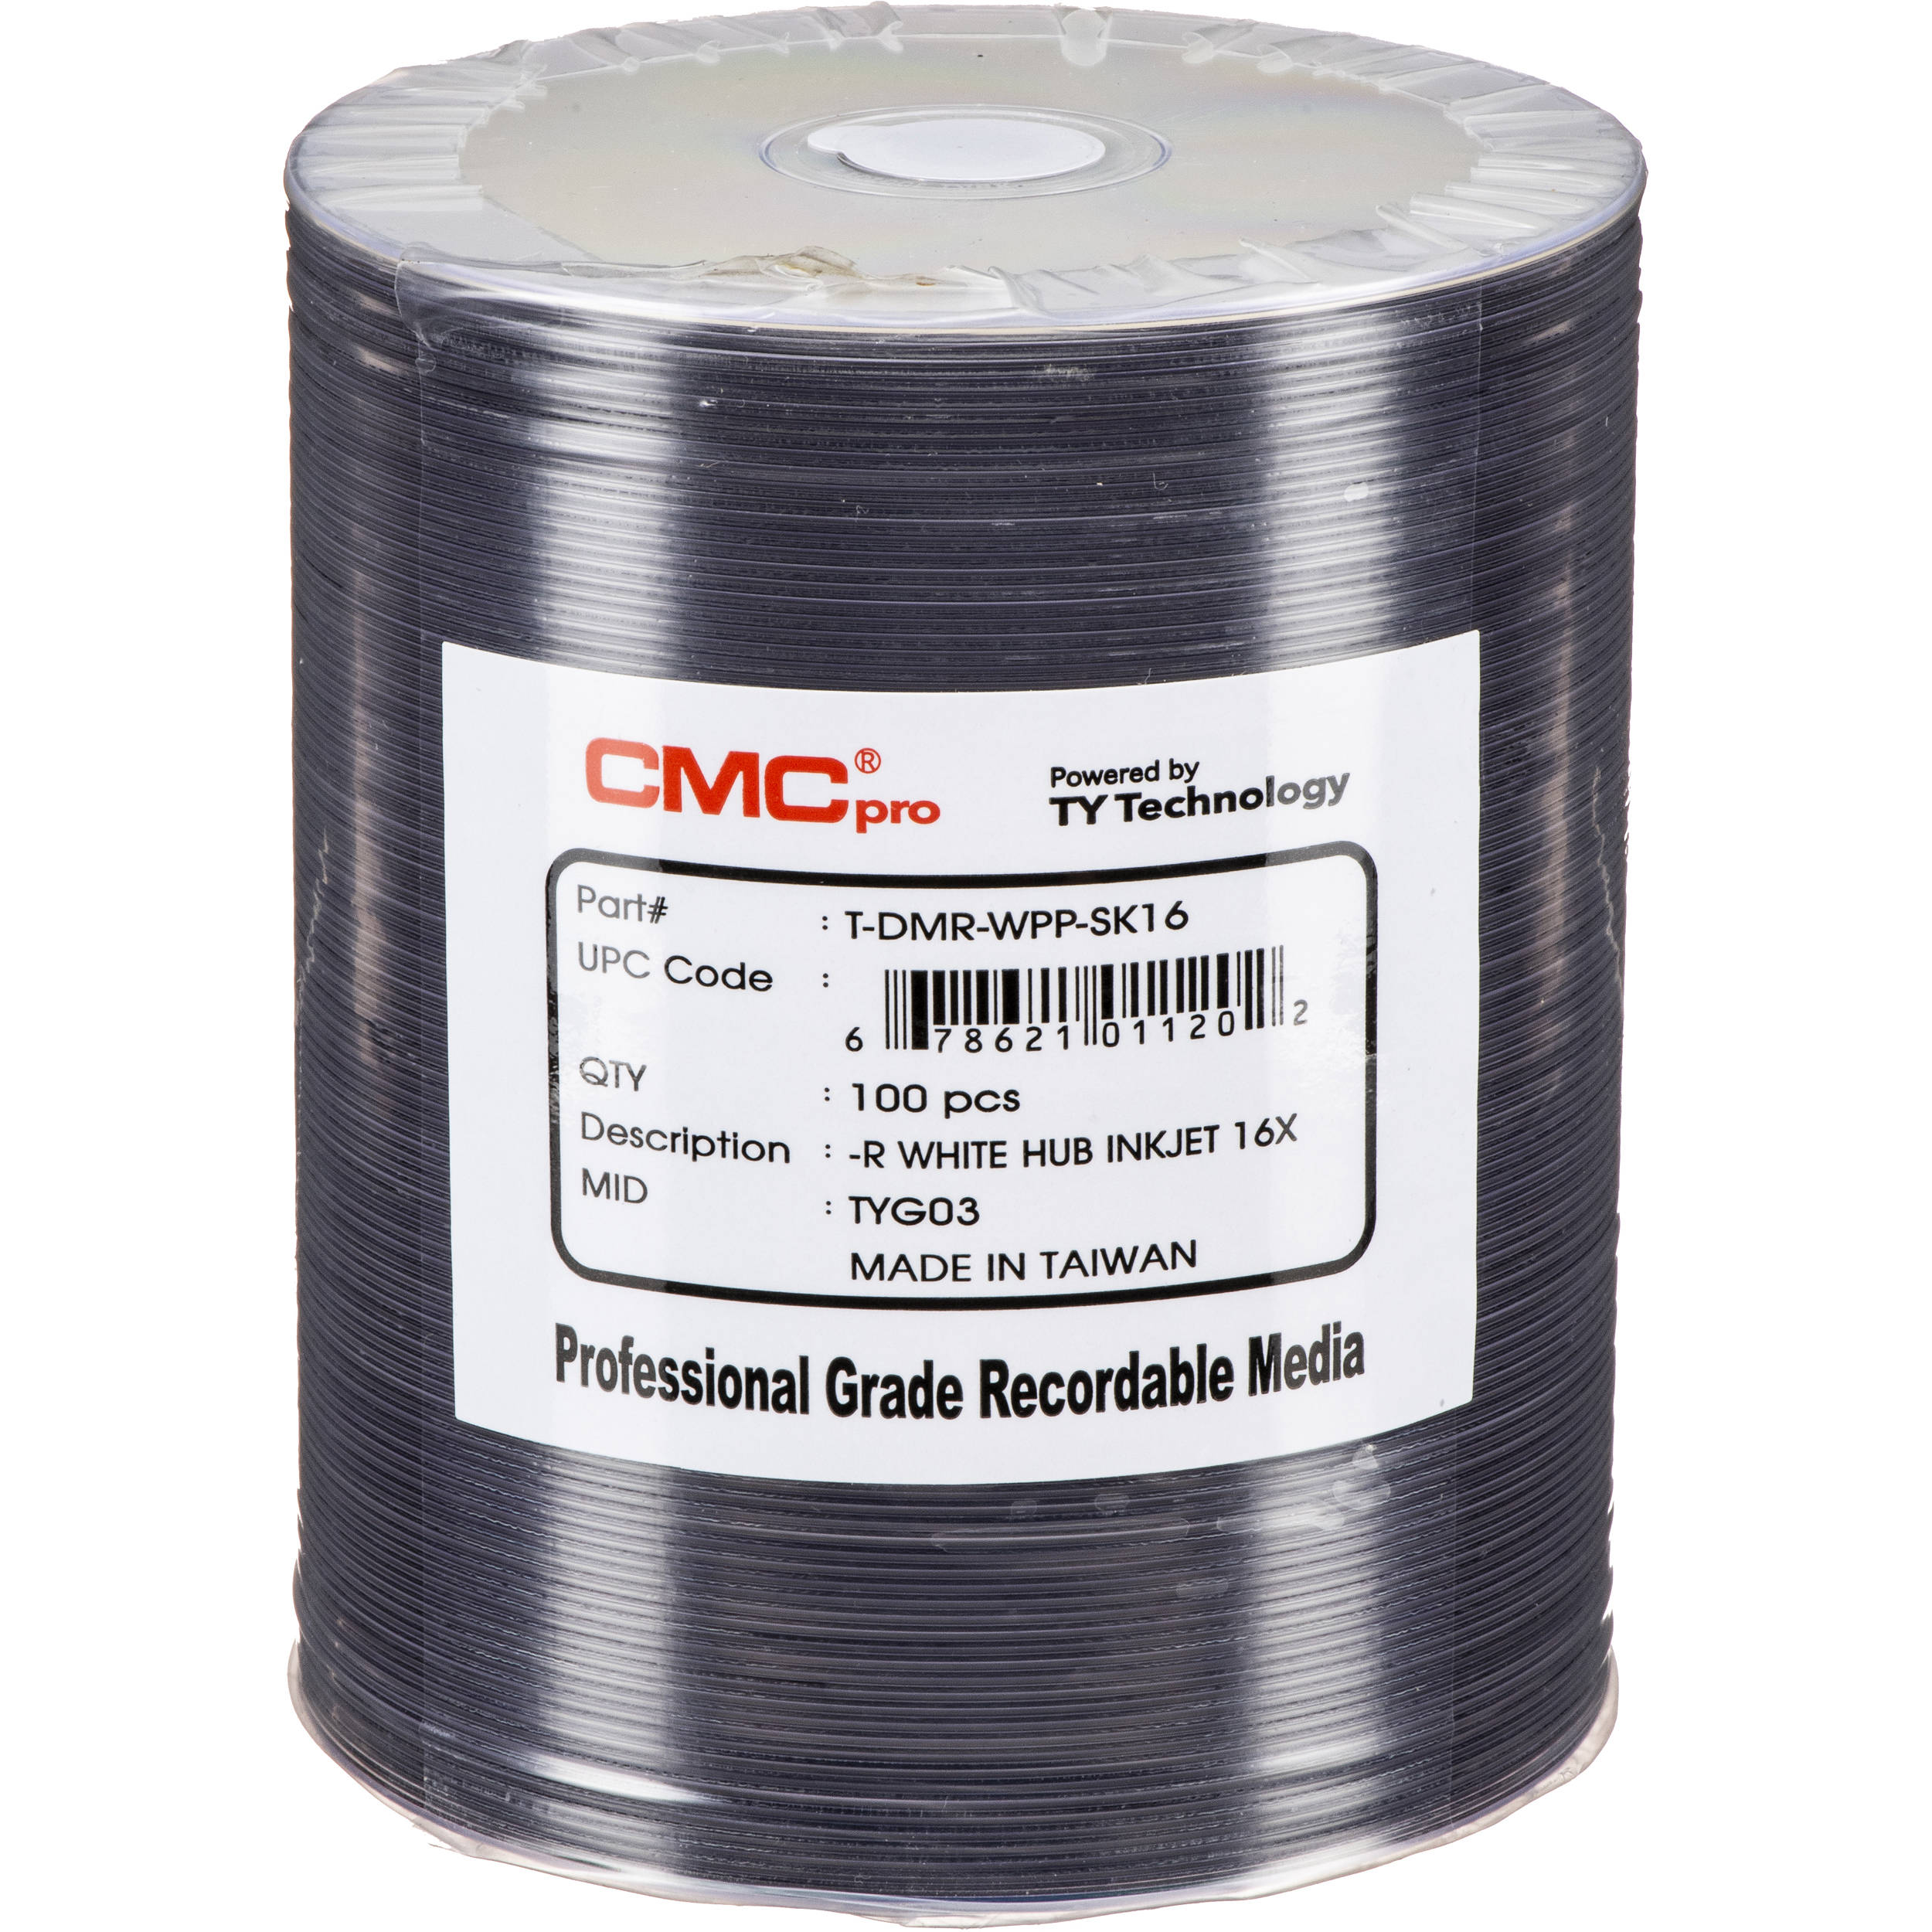 photo about Dvd R Printable named CMC Professional 4.7GB DVD-R 16x White Inkjet Hub Printable Discs (100-Pack, Tape Wrap)